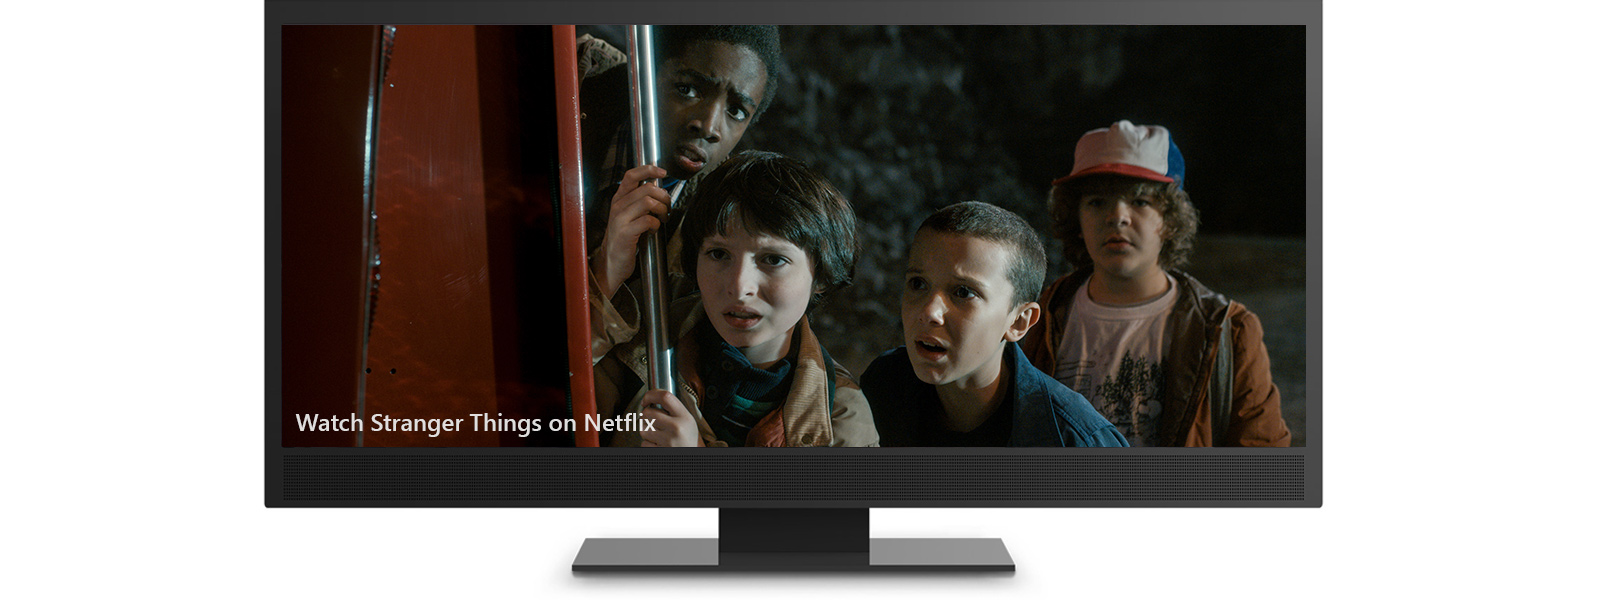 4K の Stranger Things